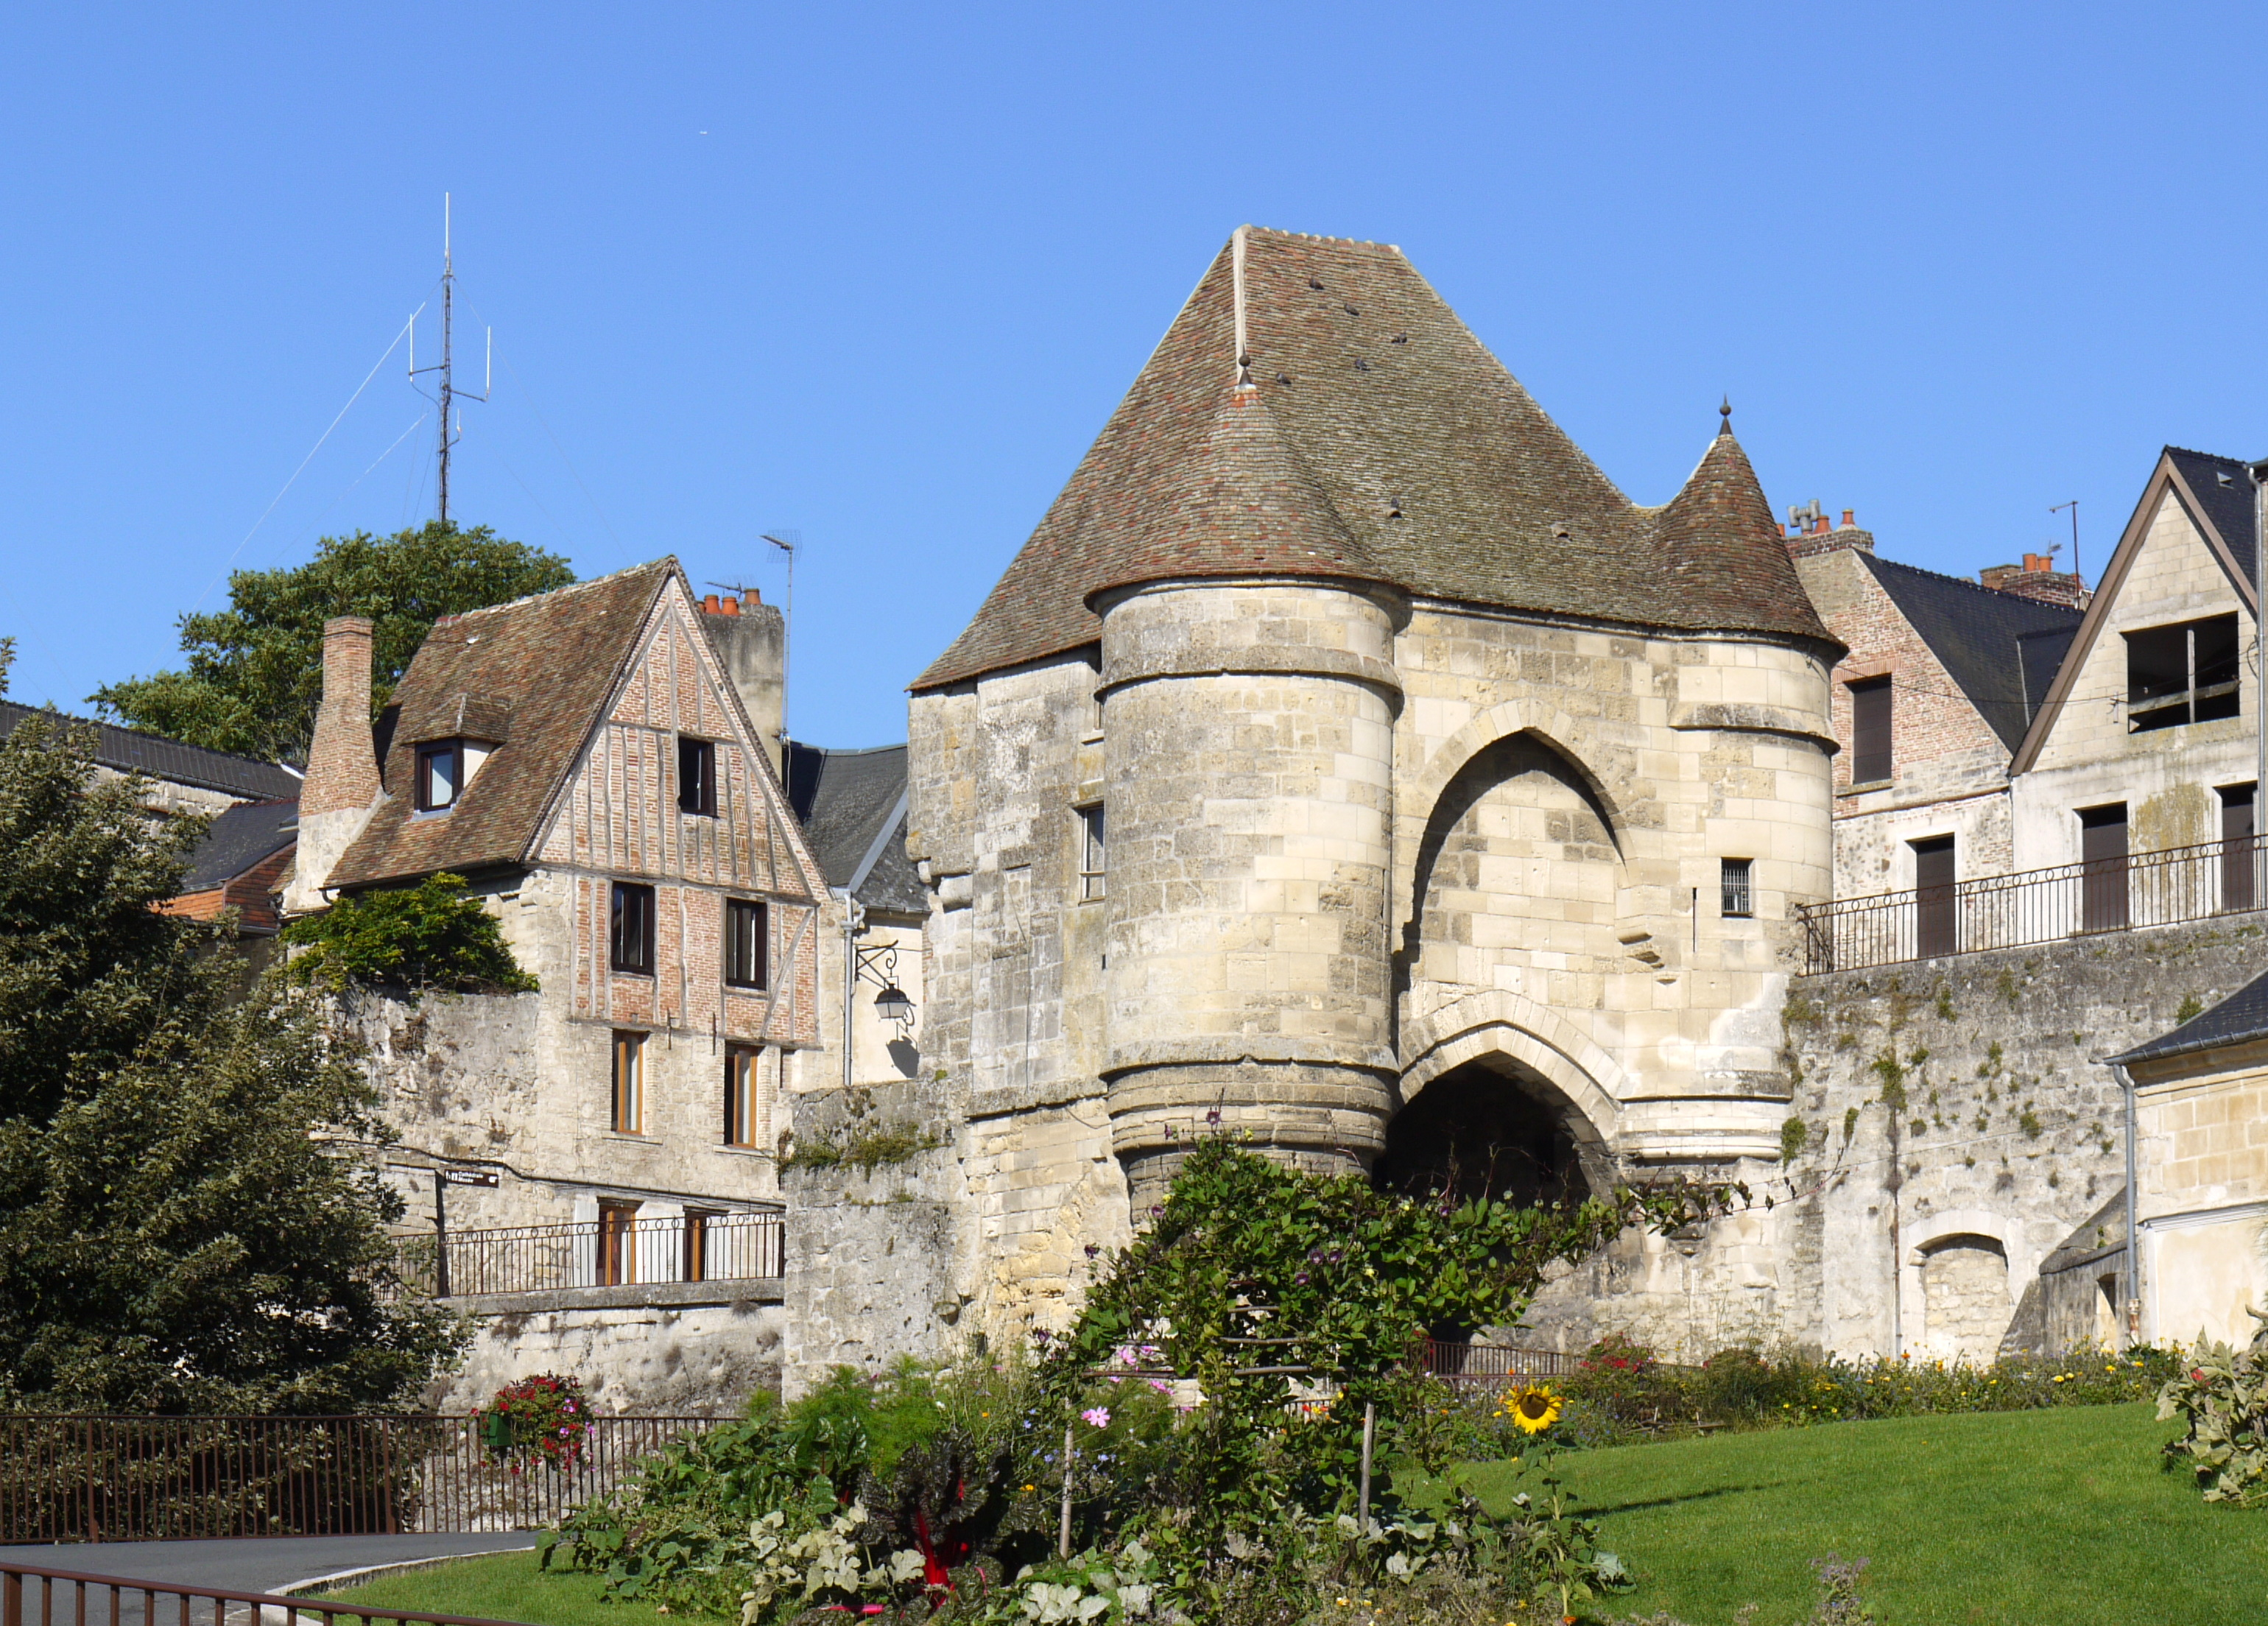 Ardon France  City new picture : Original file ‎ 3,080 × 2,208 pixels, file size: 2.6 MB, MIME type ...